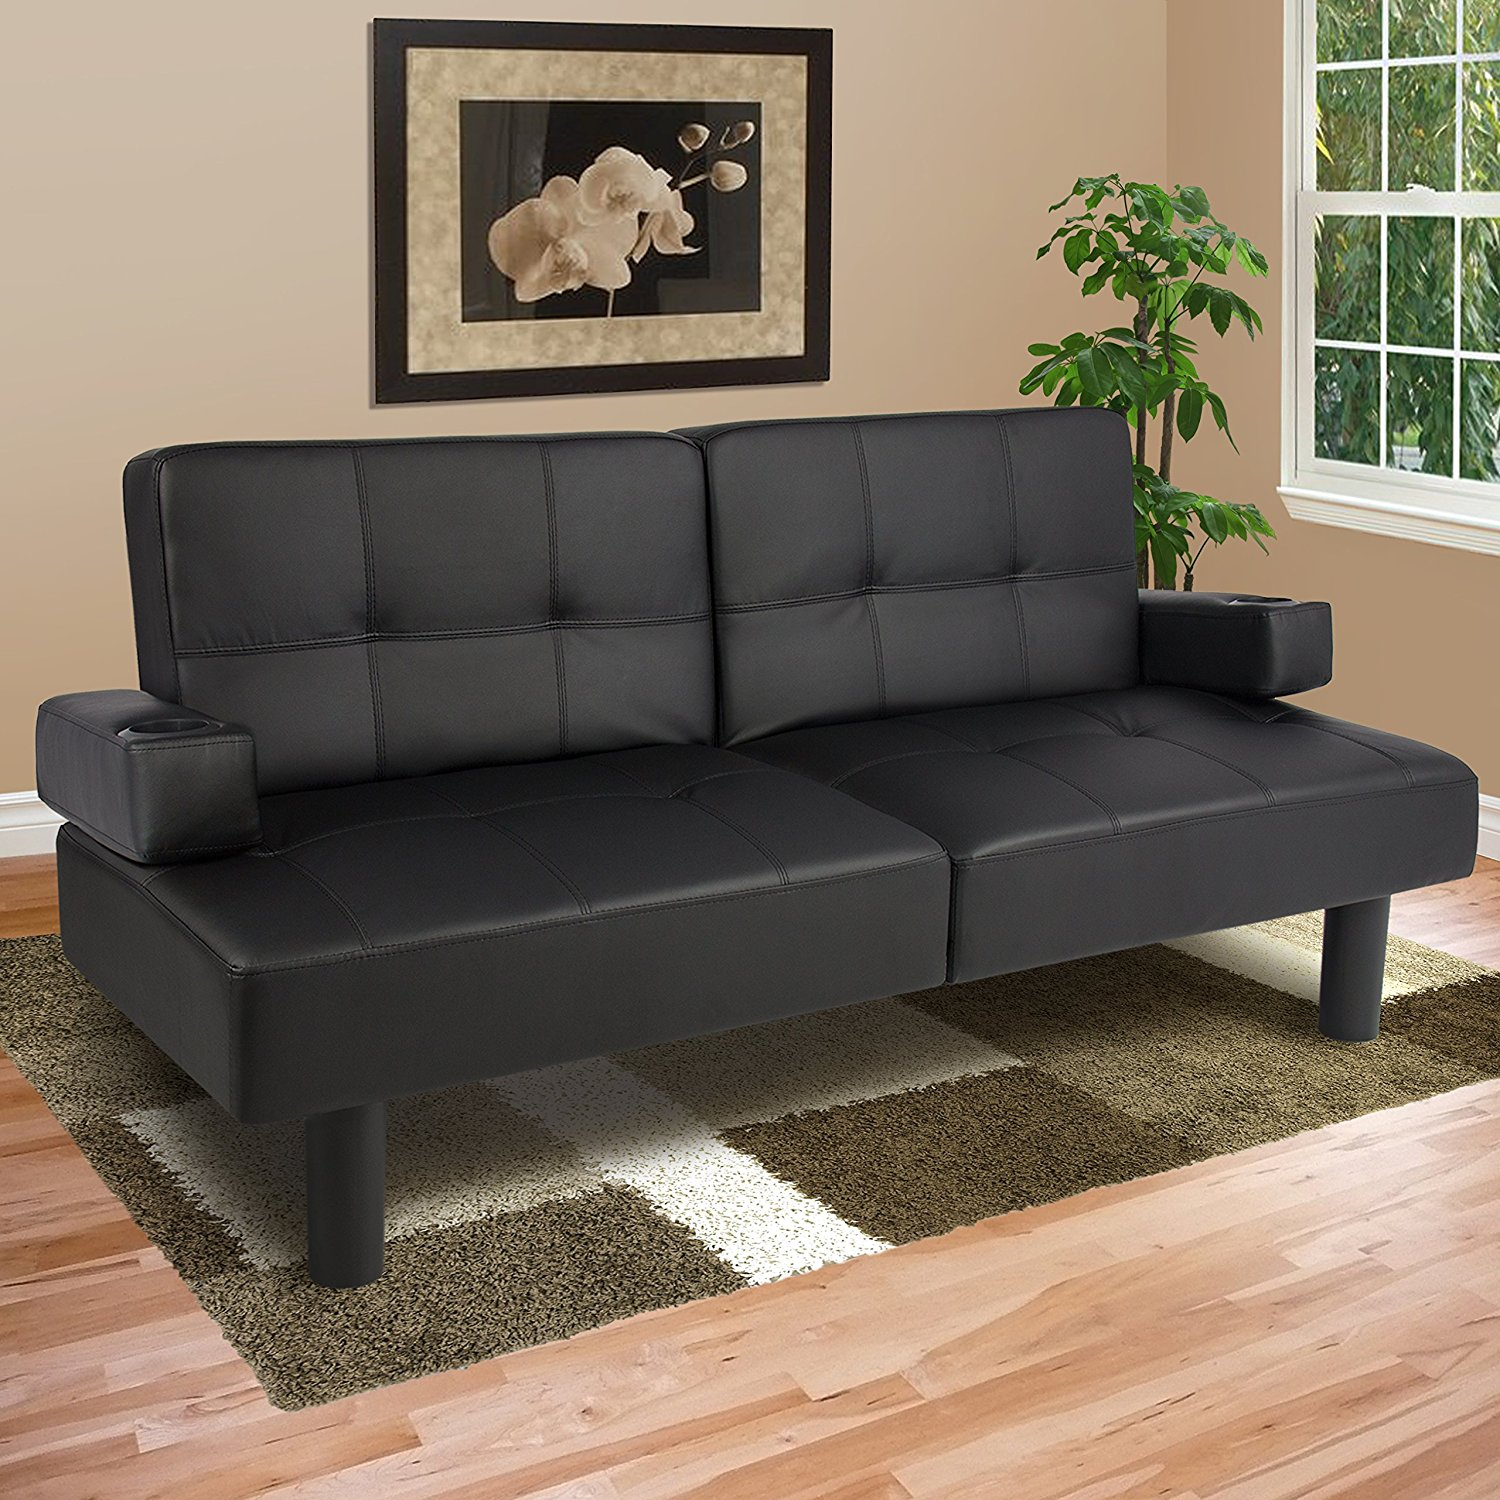 Modern Queen Size Futon Mattress Ideas